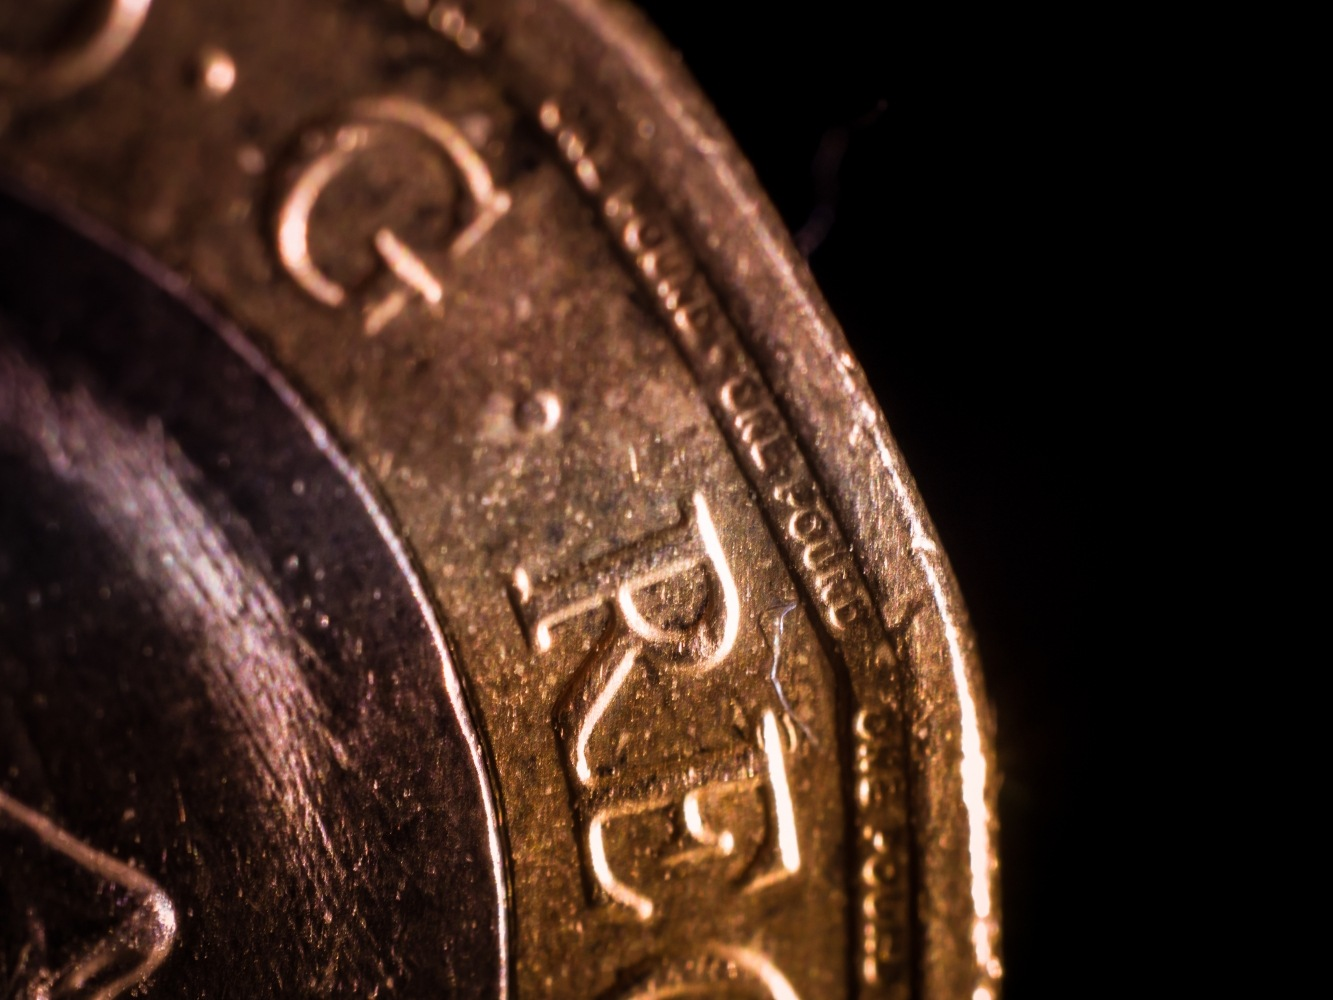 Macro pound coin by draycottphotography